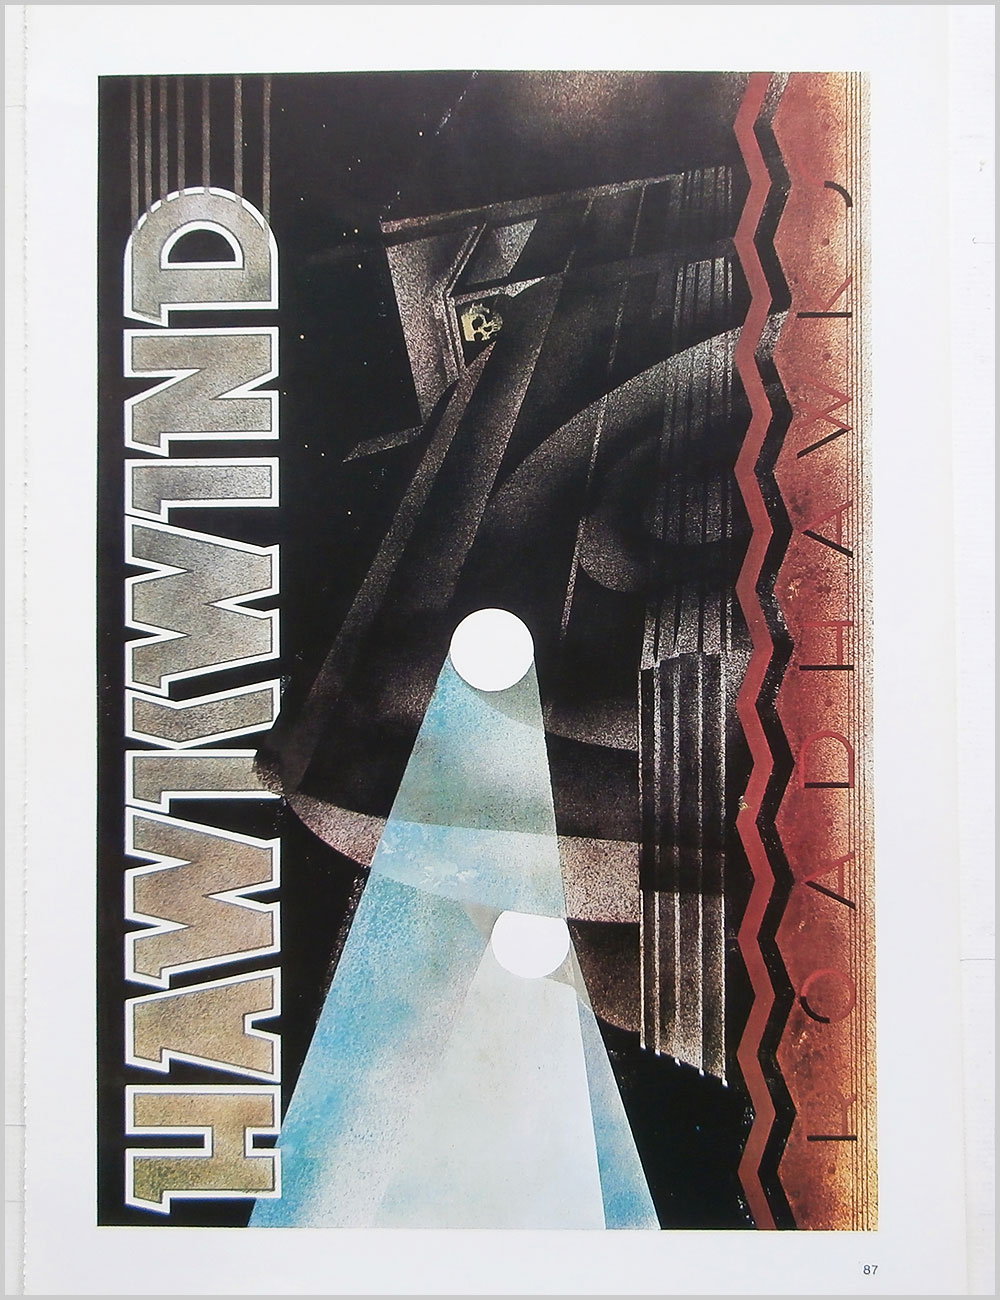 Hawkwind and Mott The Hoople - Rock Poster: Hawkwind: RoadHawks b/w Mott The Hoople: The Hoople (PB100321)